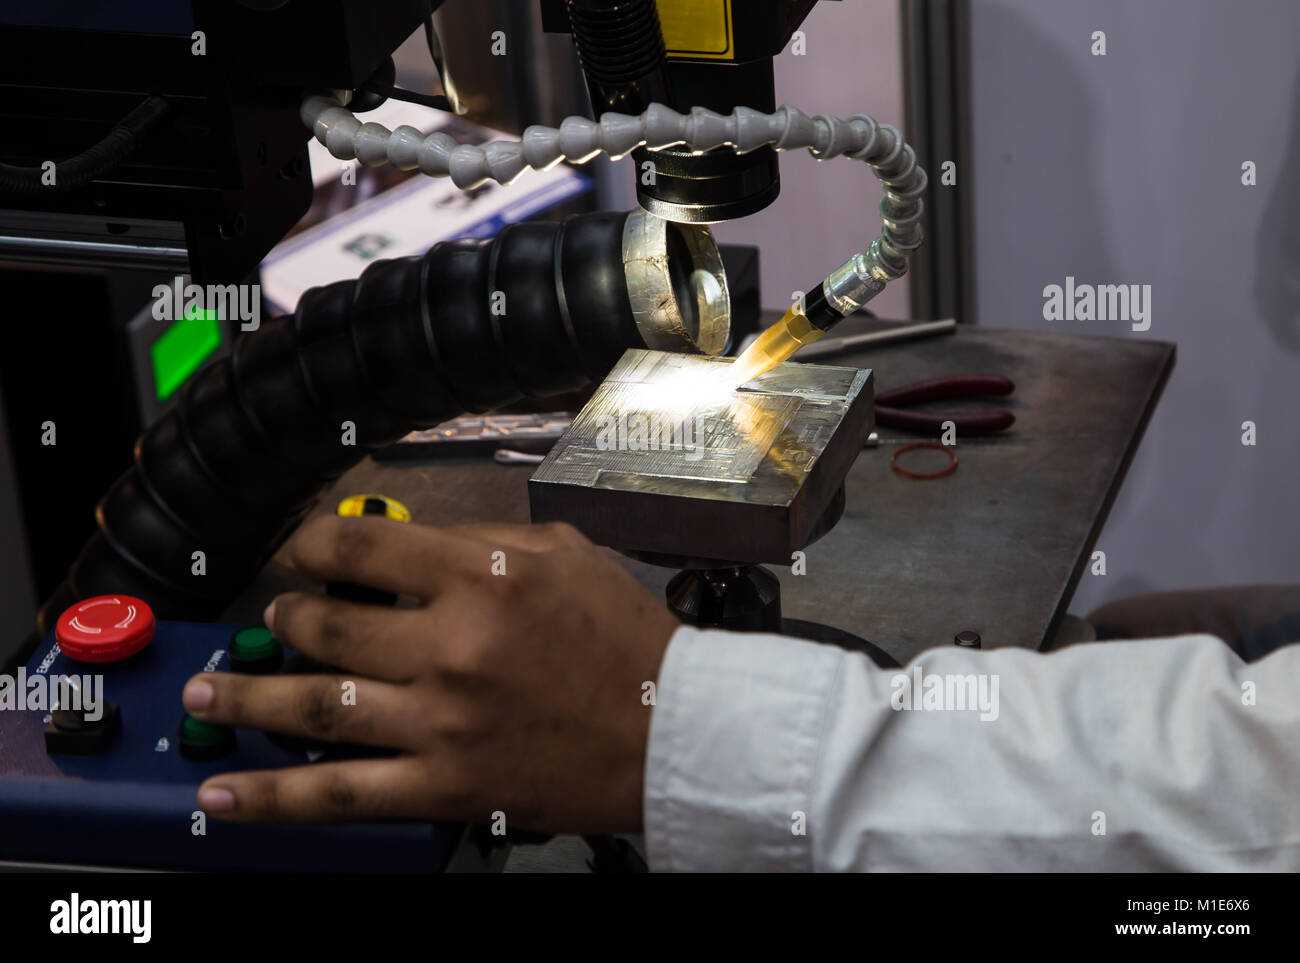 Welder operate laser welding machine - Stock Image